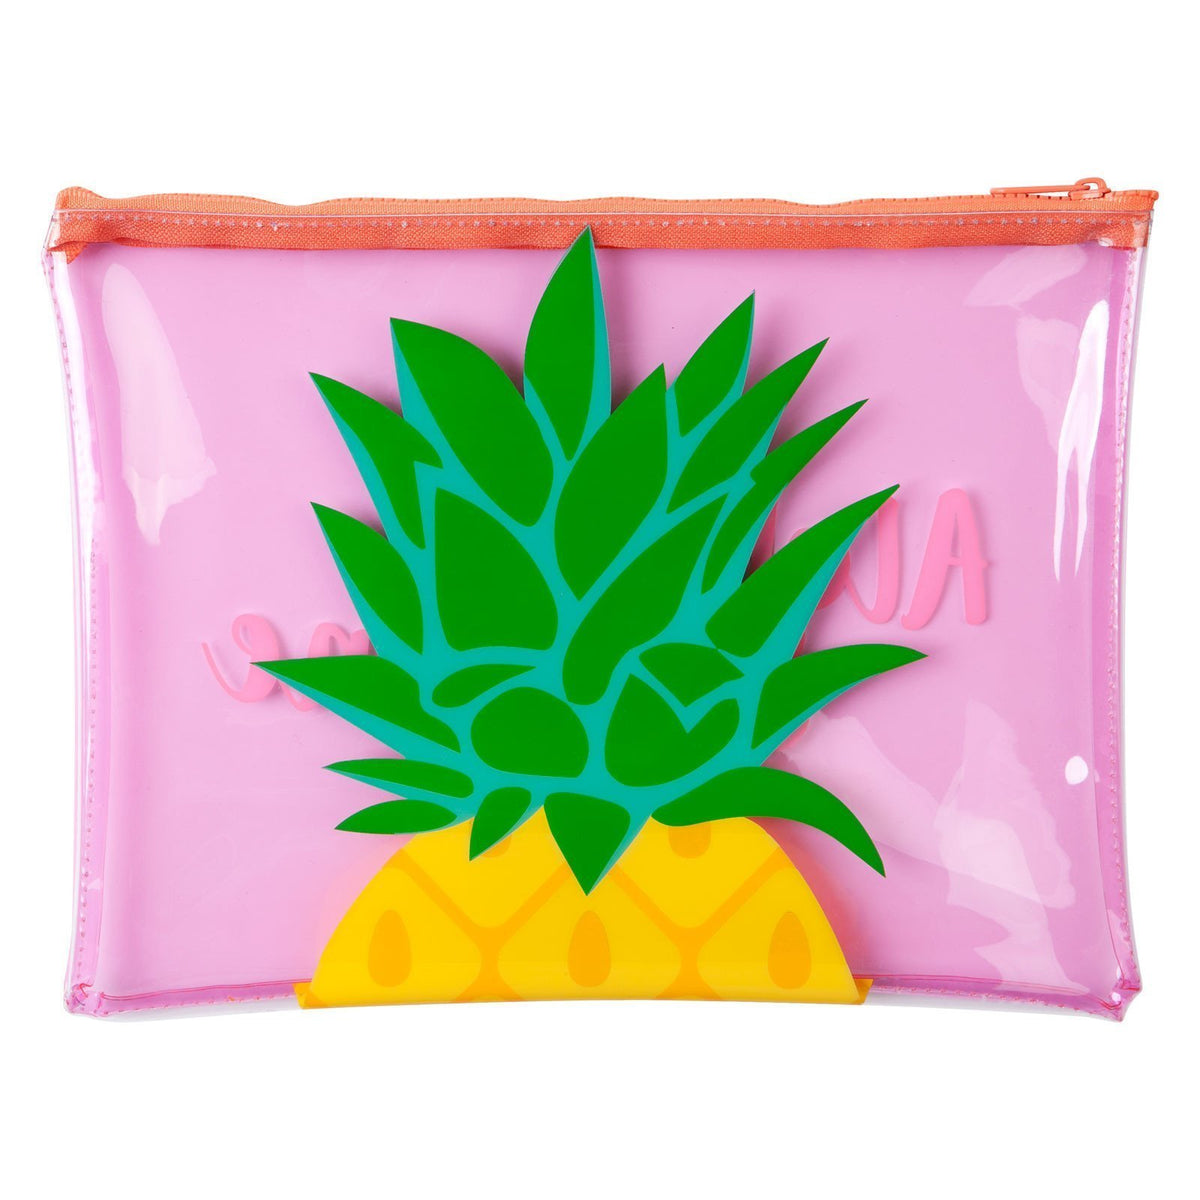 Sunnylife | See Thru Pouch | Pineapple